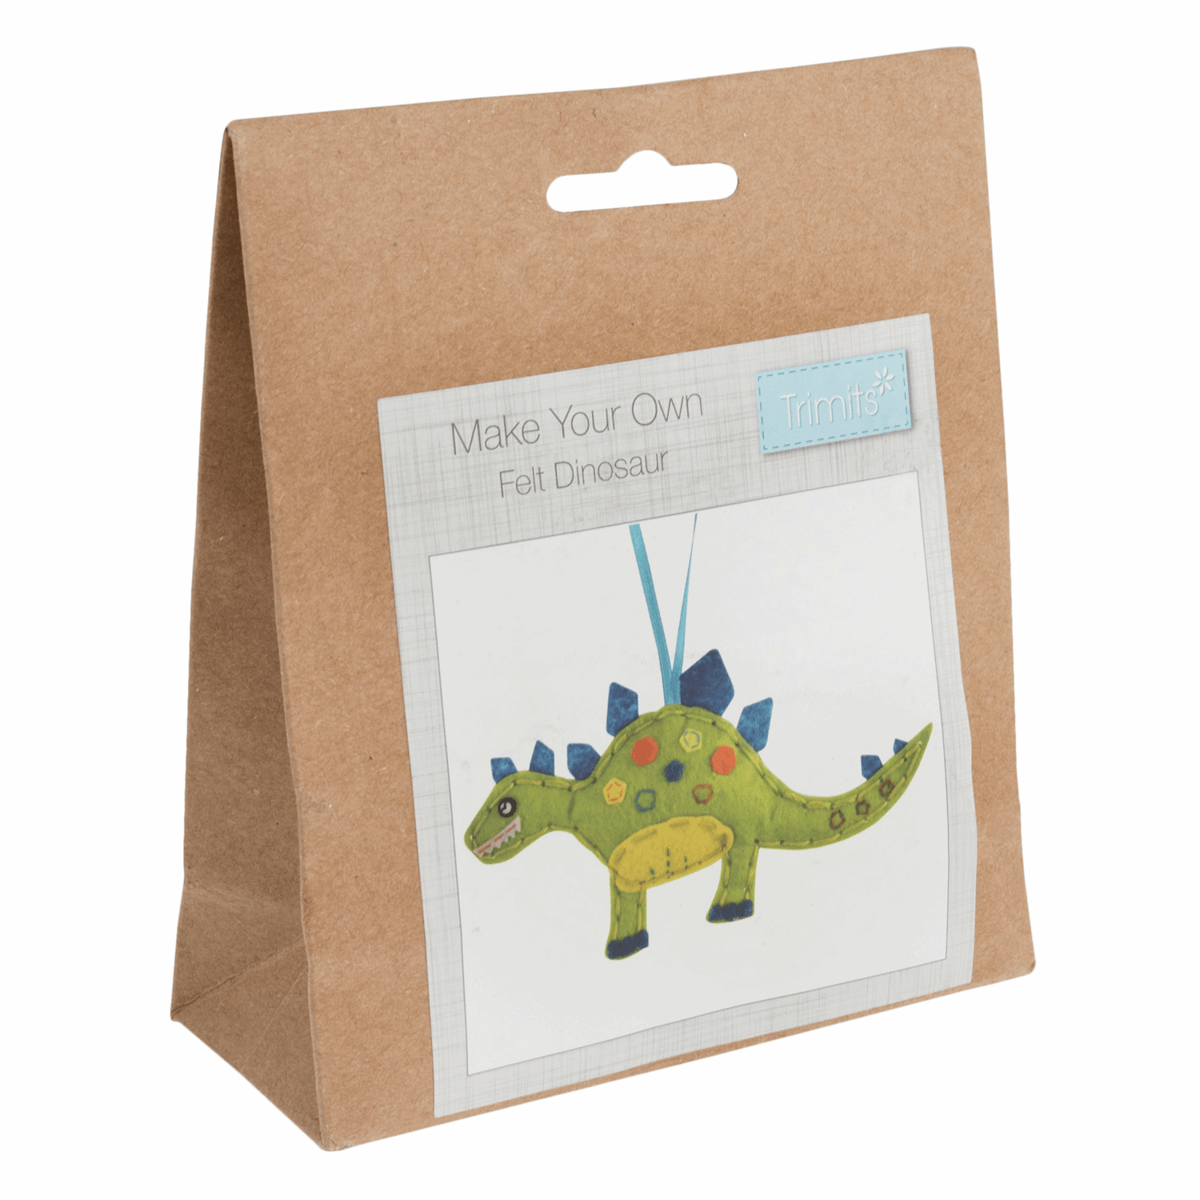 Make Your Own Dinosaur - Hanging Decoration Kit - Beginners Craft Childrens Kit - by Trimits